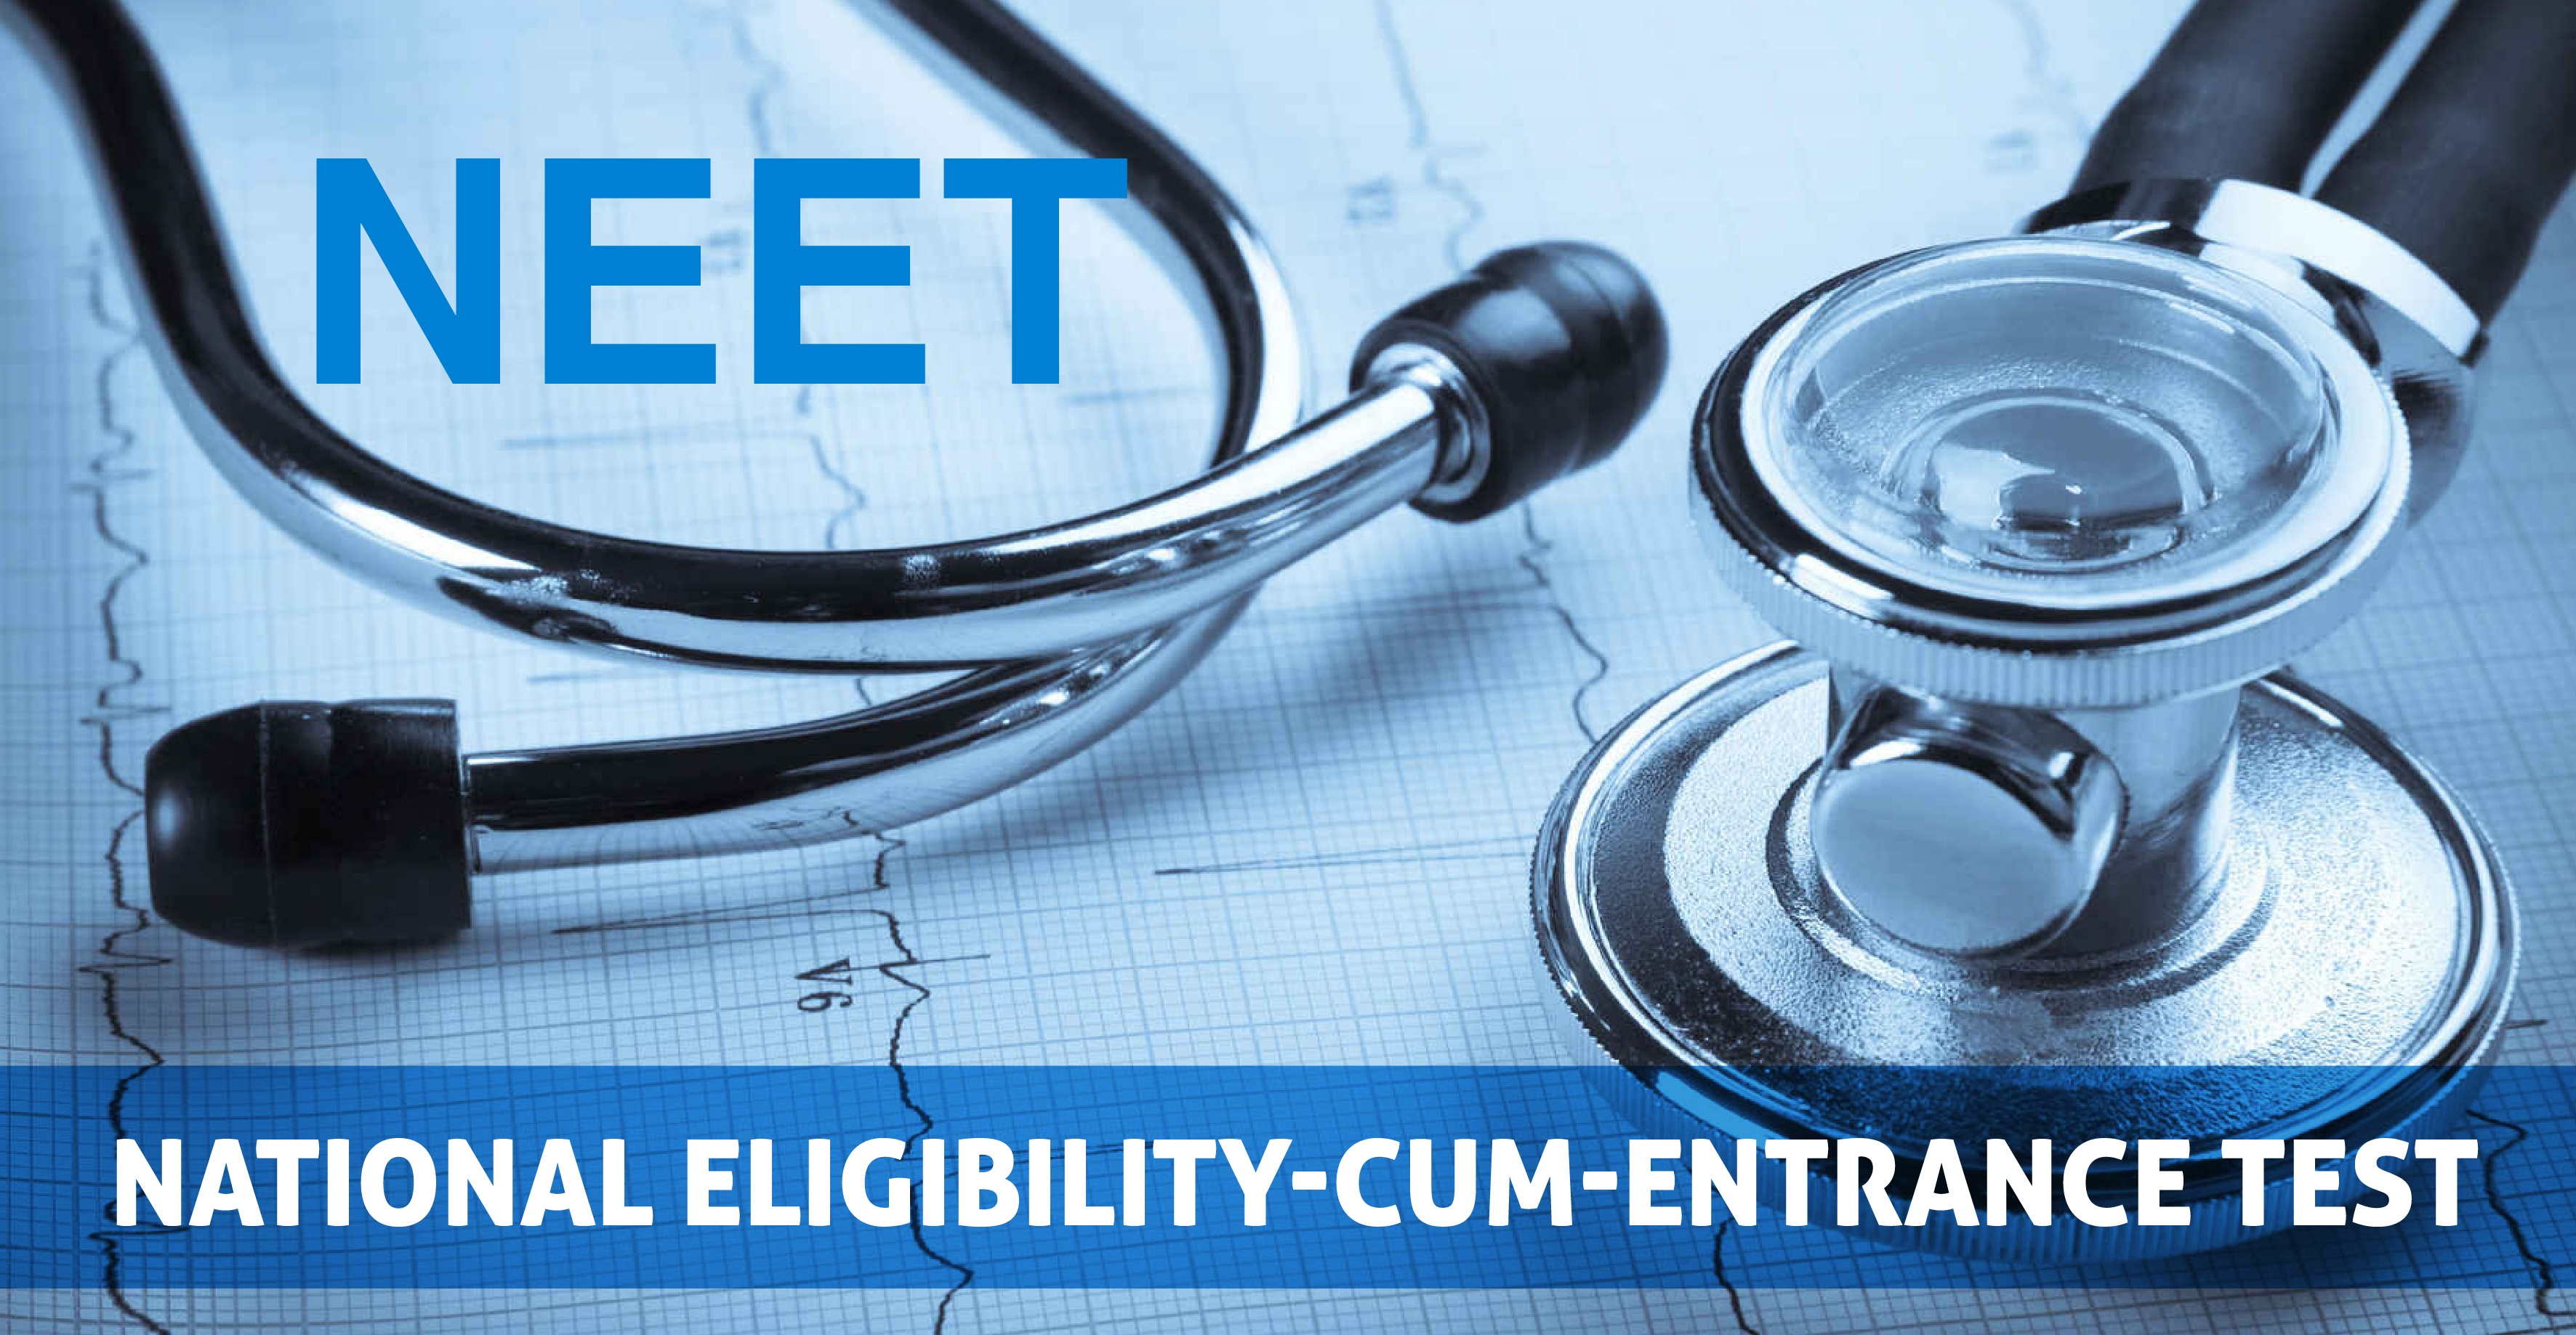 NEET Entrance Exams to take admission in medical colleges